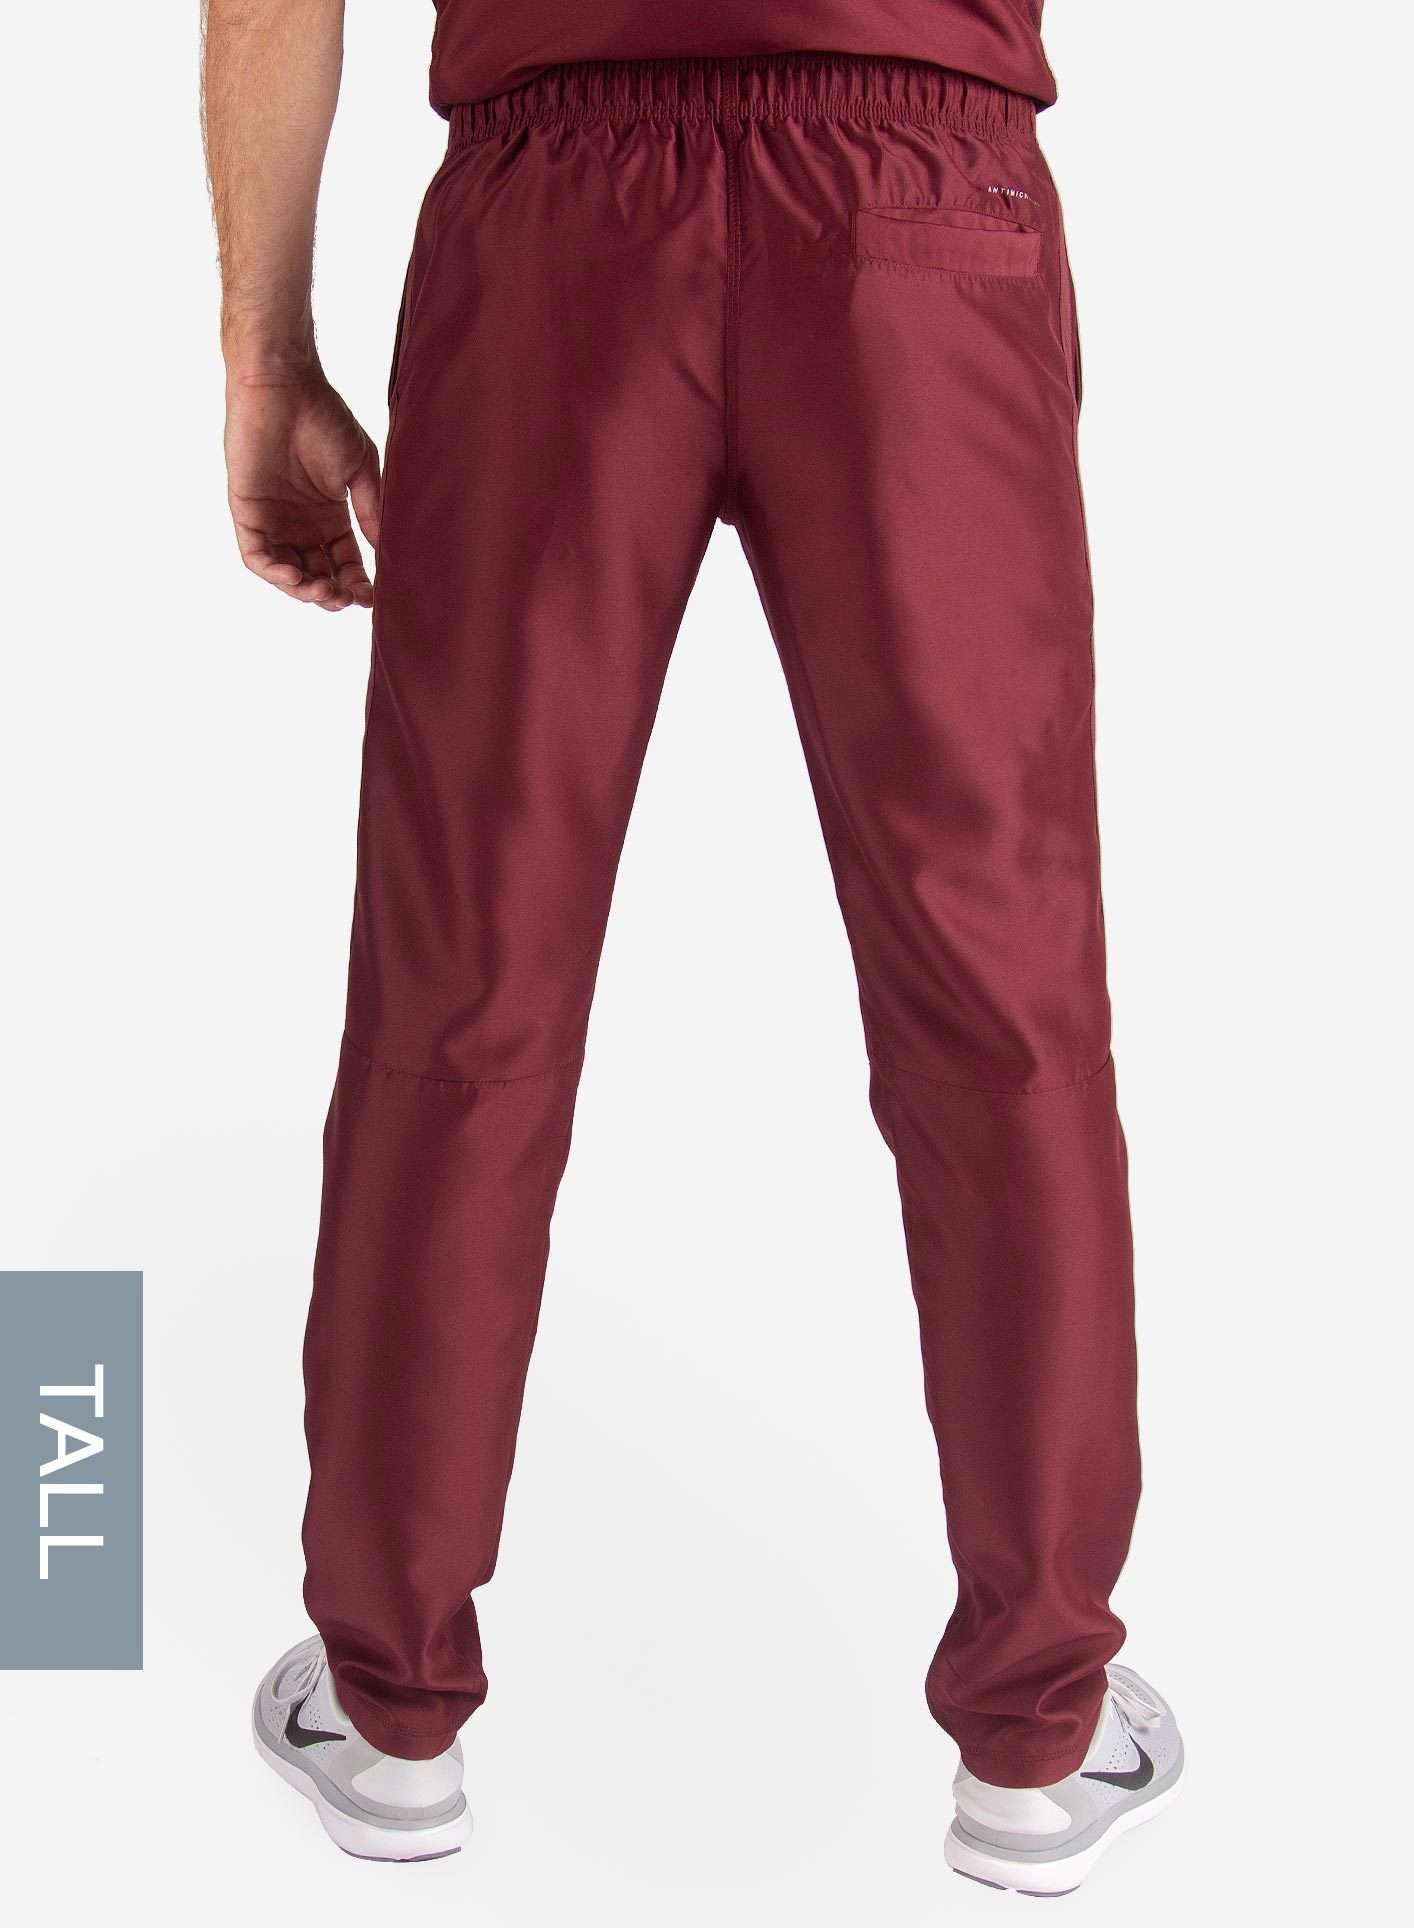 Men's Tall Slim Fit Scrub Pants in Bold Burgundy back